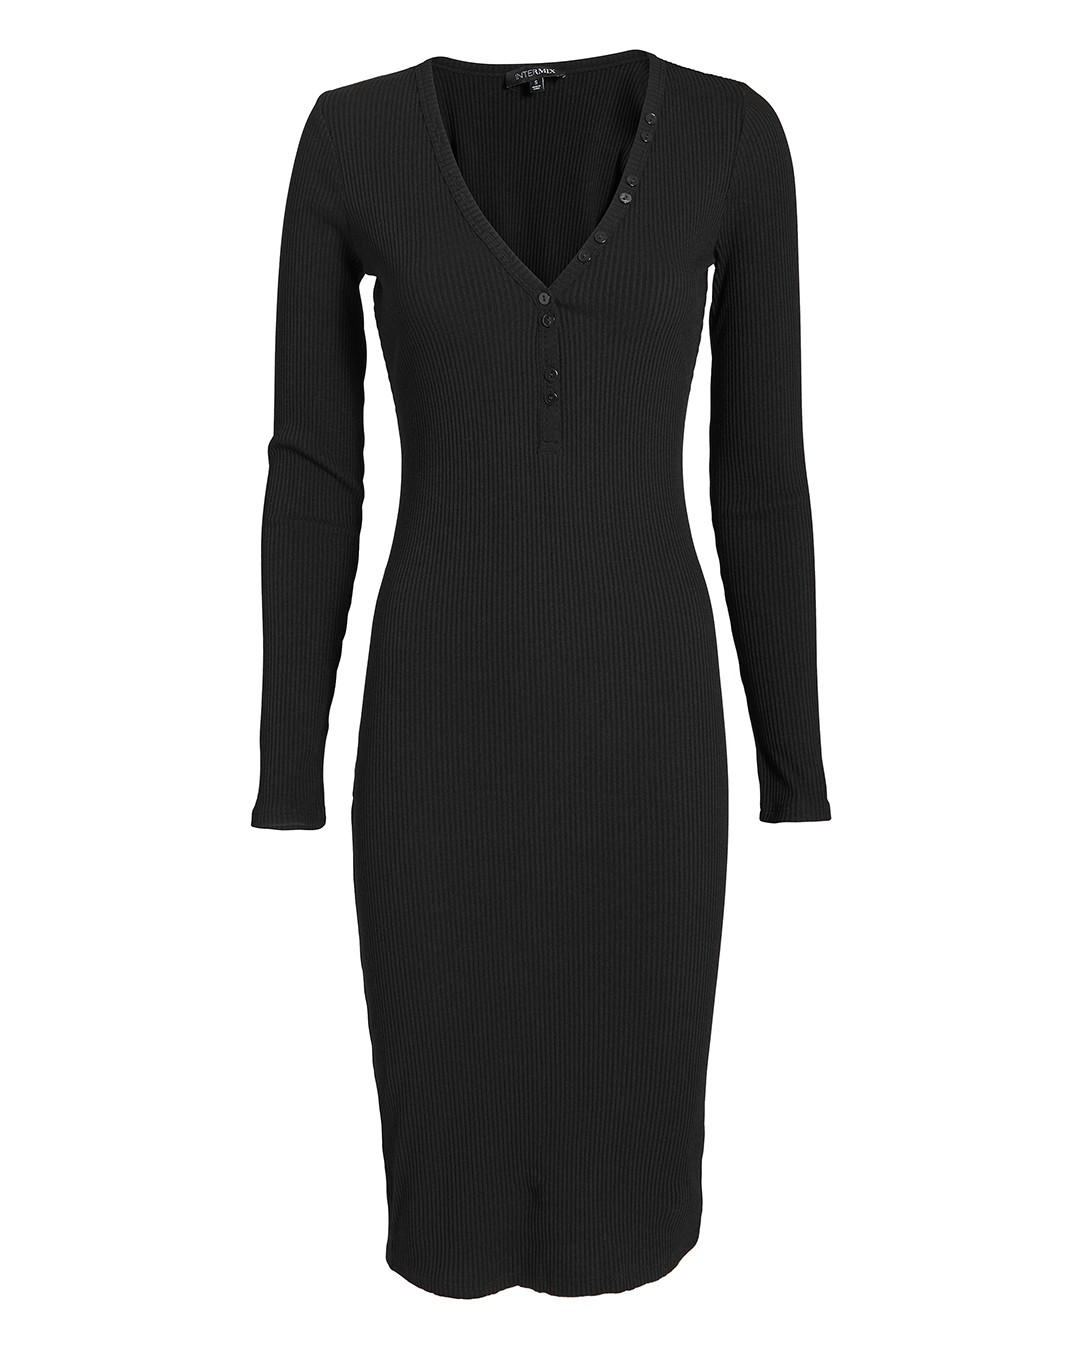 EXCLUSIVE FOR INTERMIX INTERMIX MOLLY BUTTON FRONT RIBBED DRE BLACK